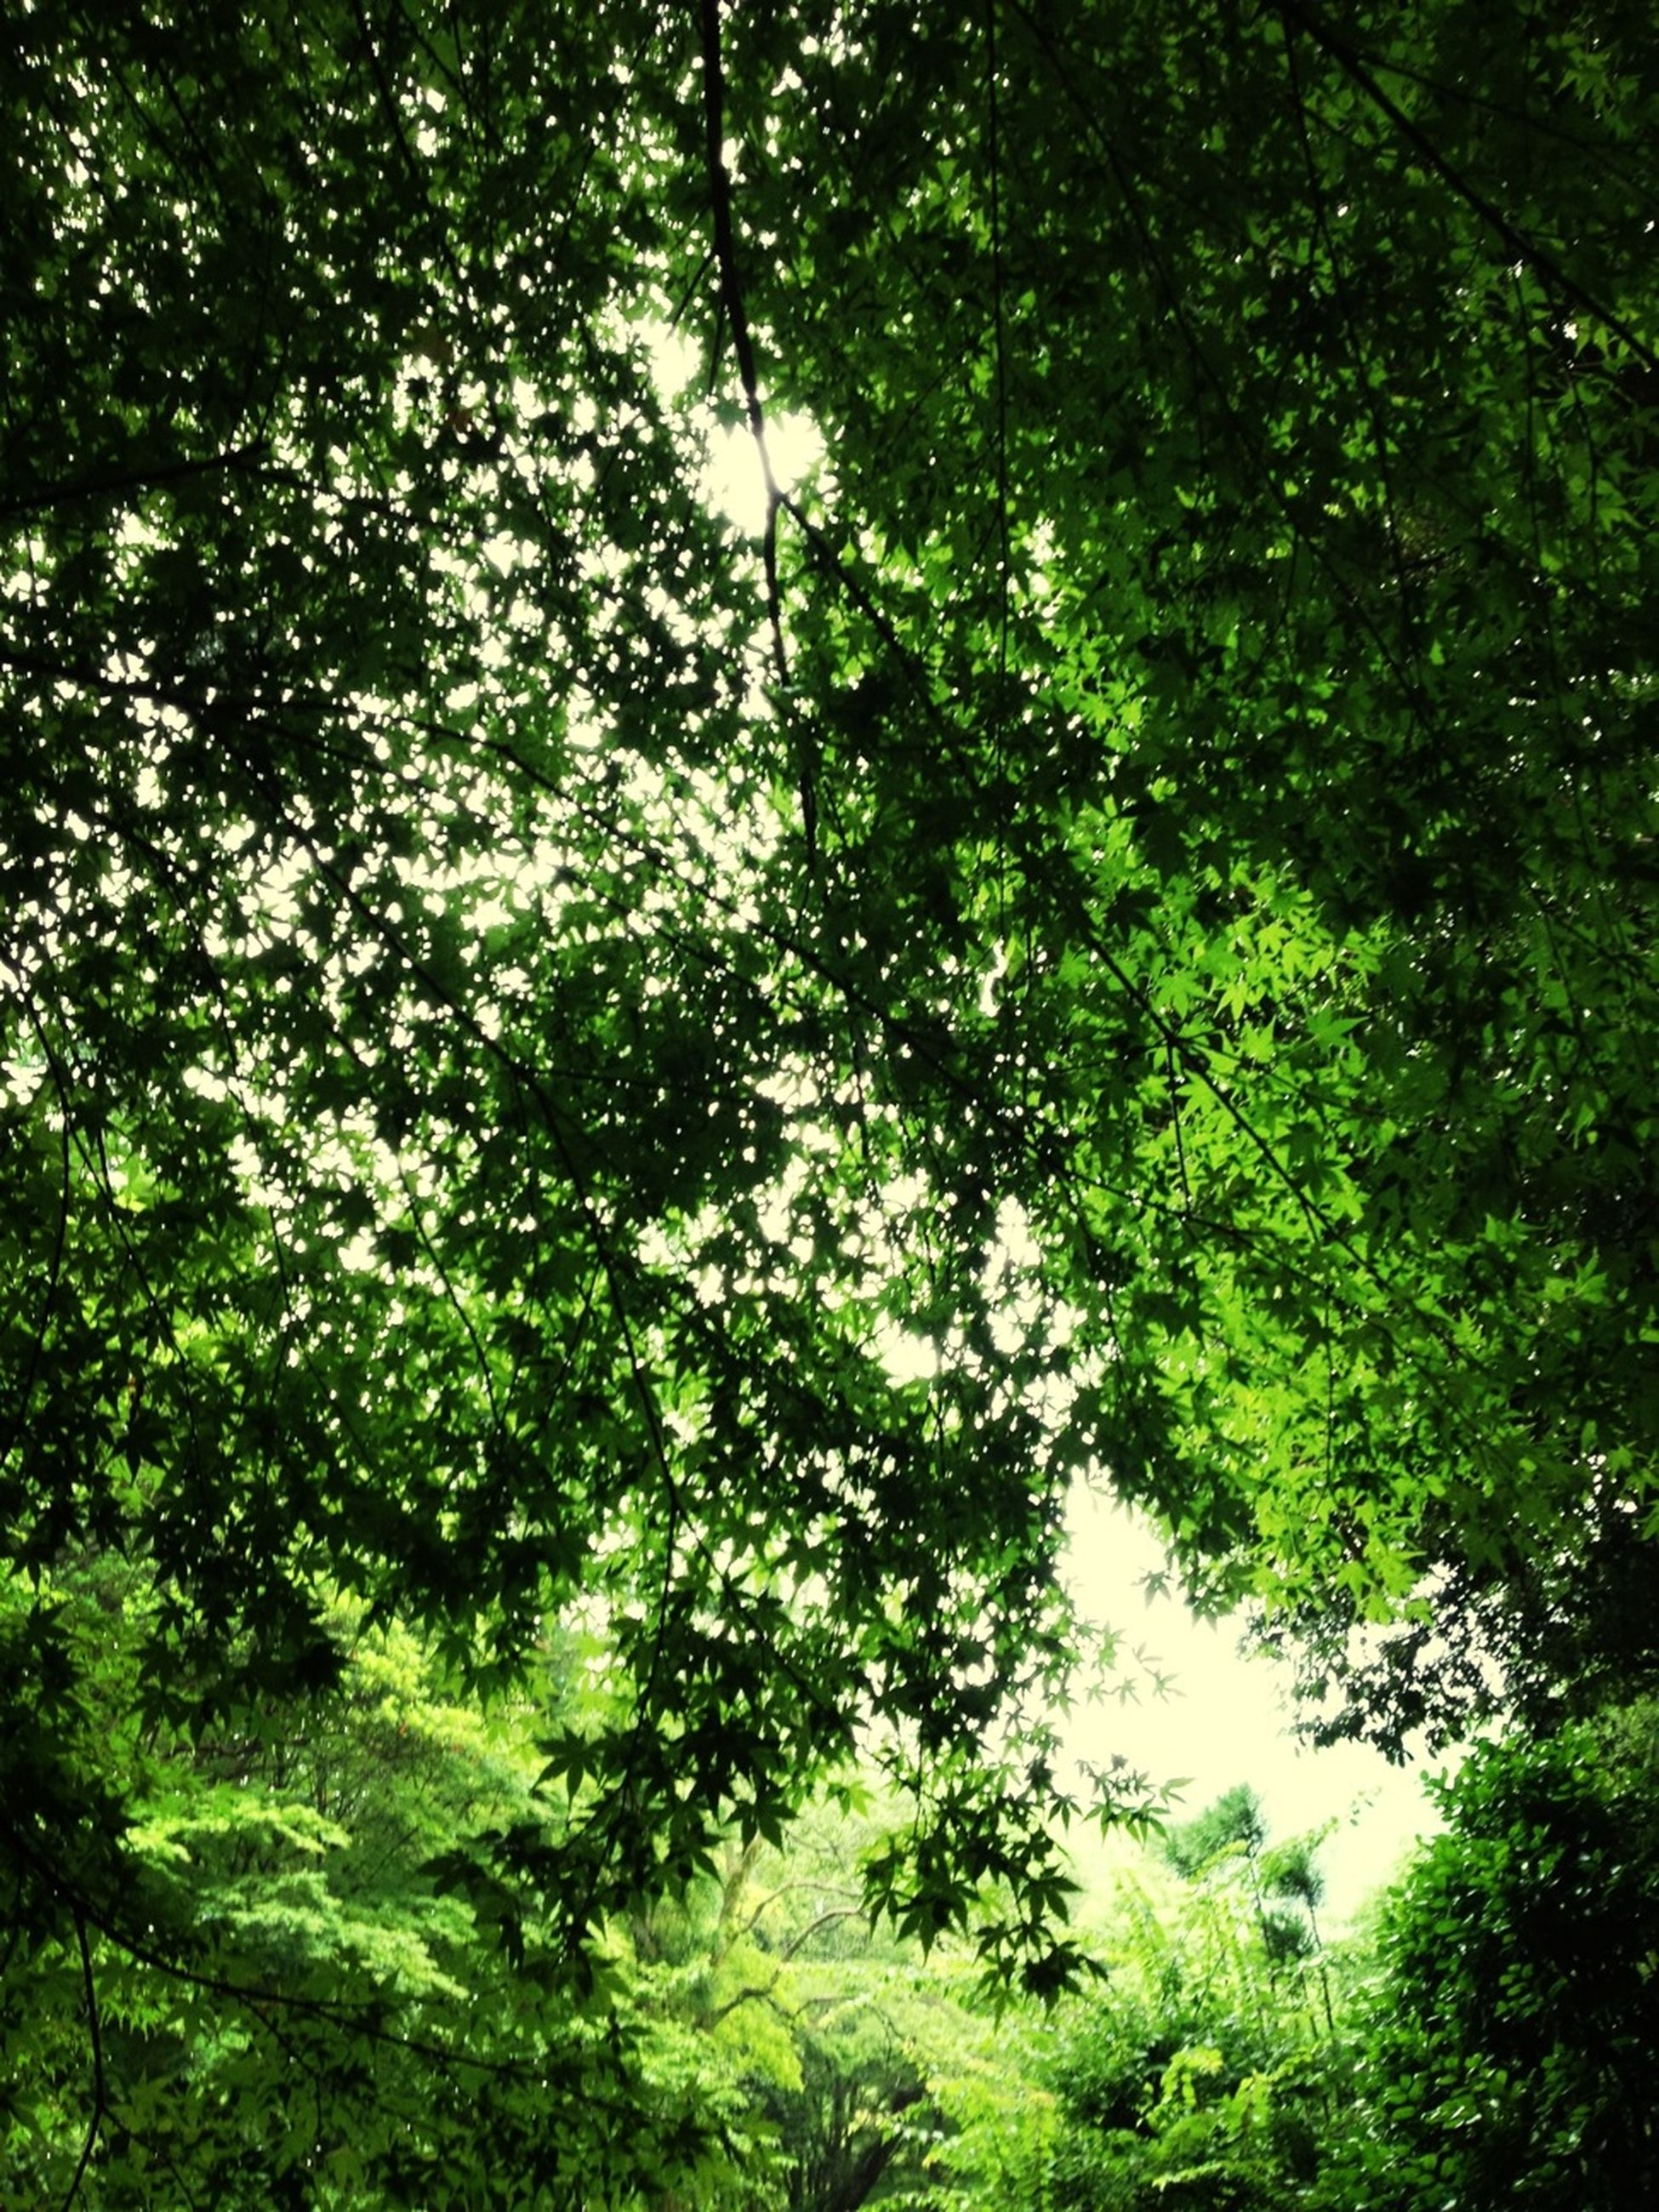 tree, growth, green color, branch, tranquility, forest, nature, low angle view, beauty in nature, lush foliage, tranquil scene, scenics, leaf, day, outdoors, sunlight, green, no people, idyllic, backgrounds